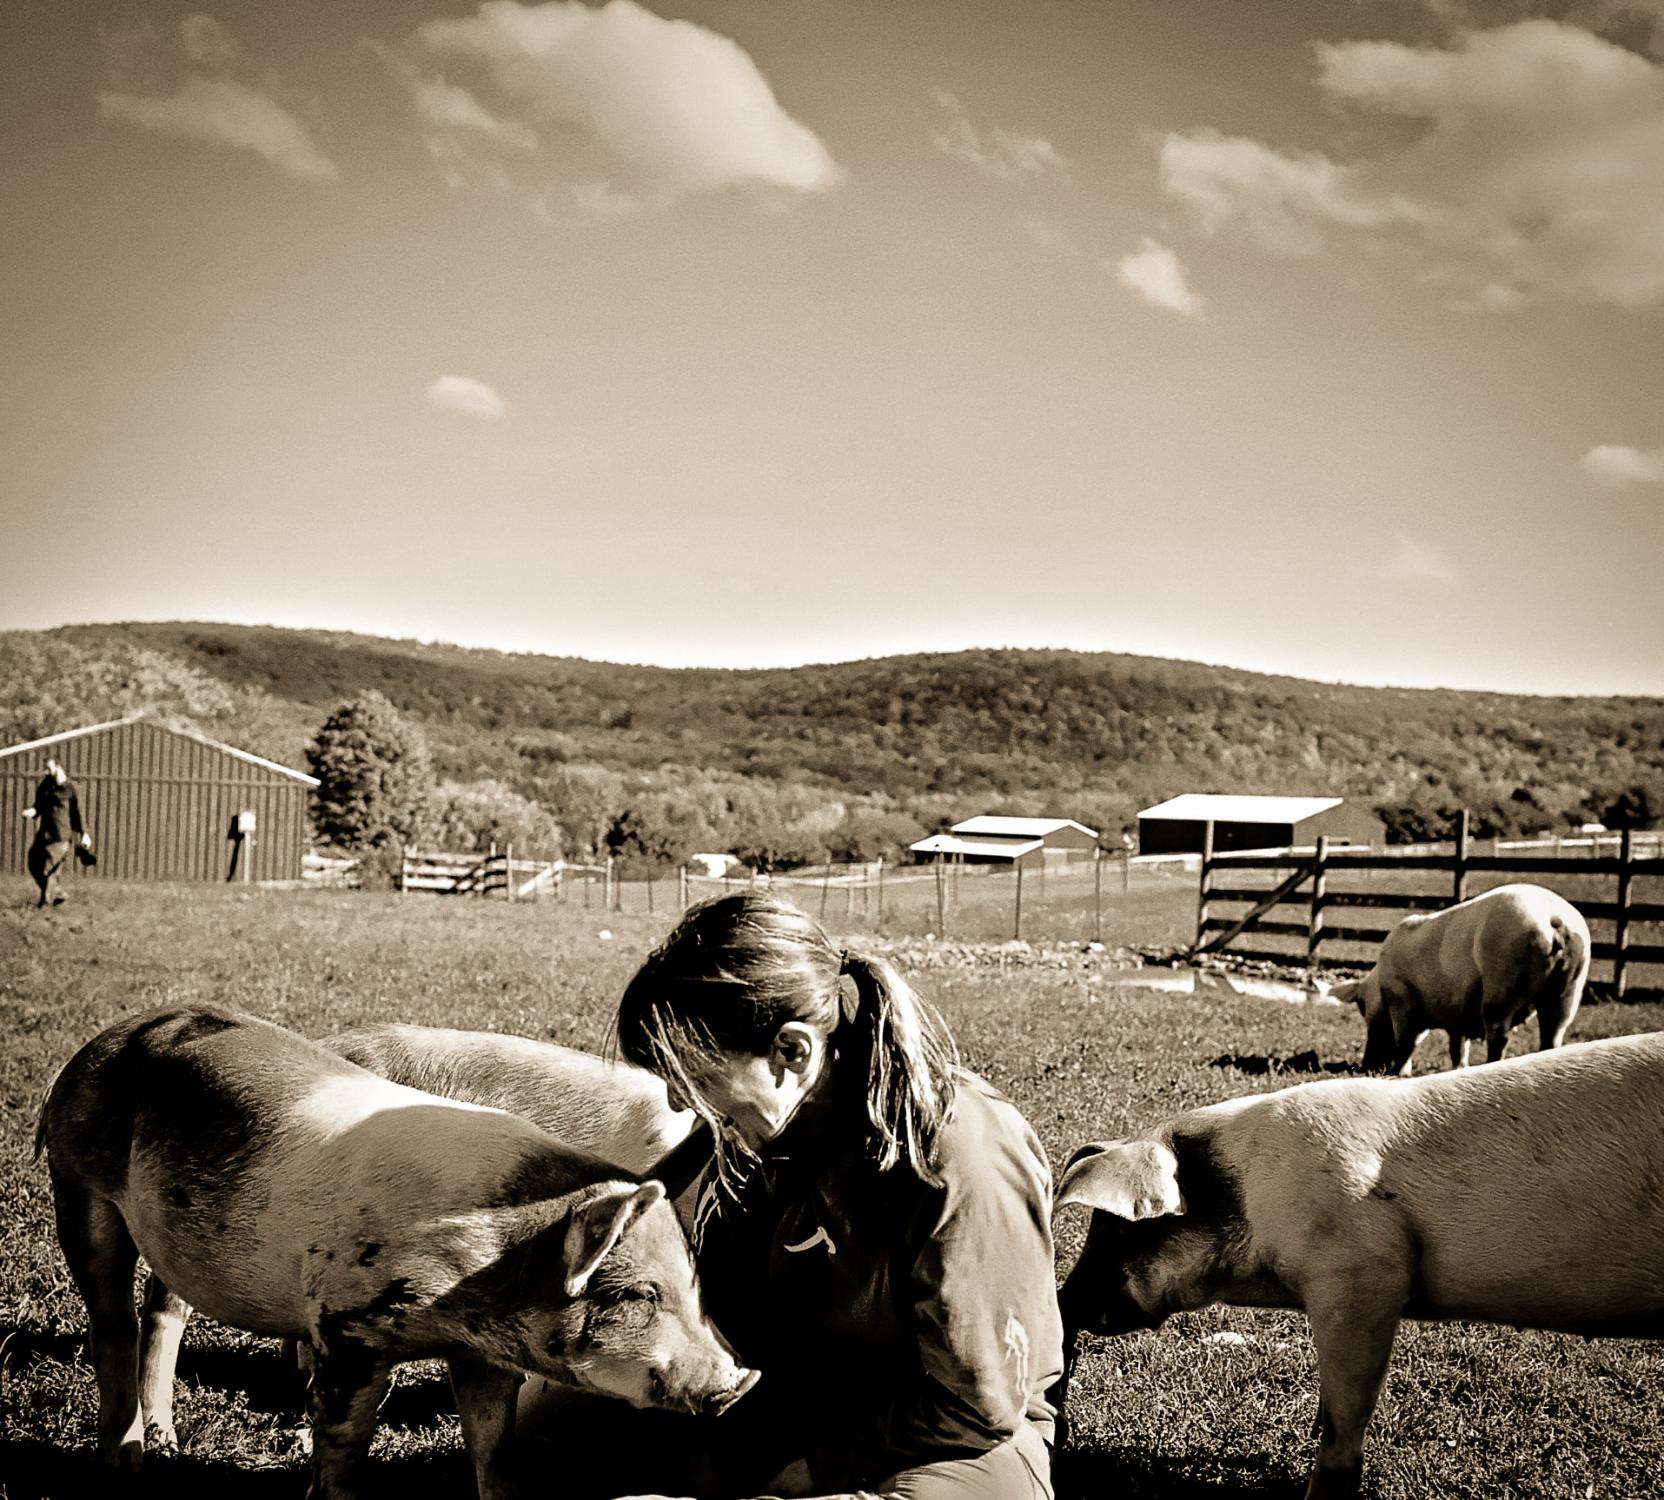 Susie Coston, former shelter director at Farm Sanctuary in Watkins Glen, New York